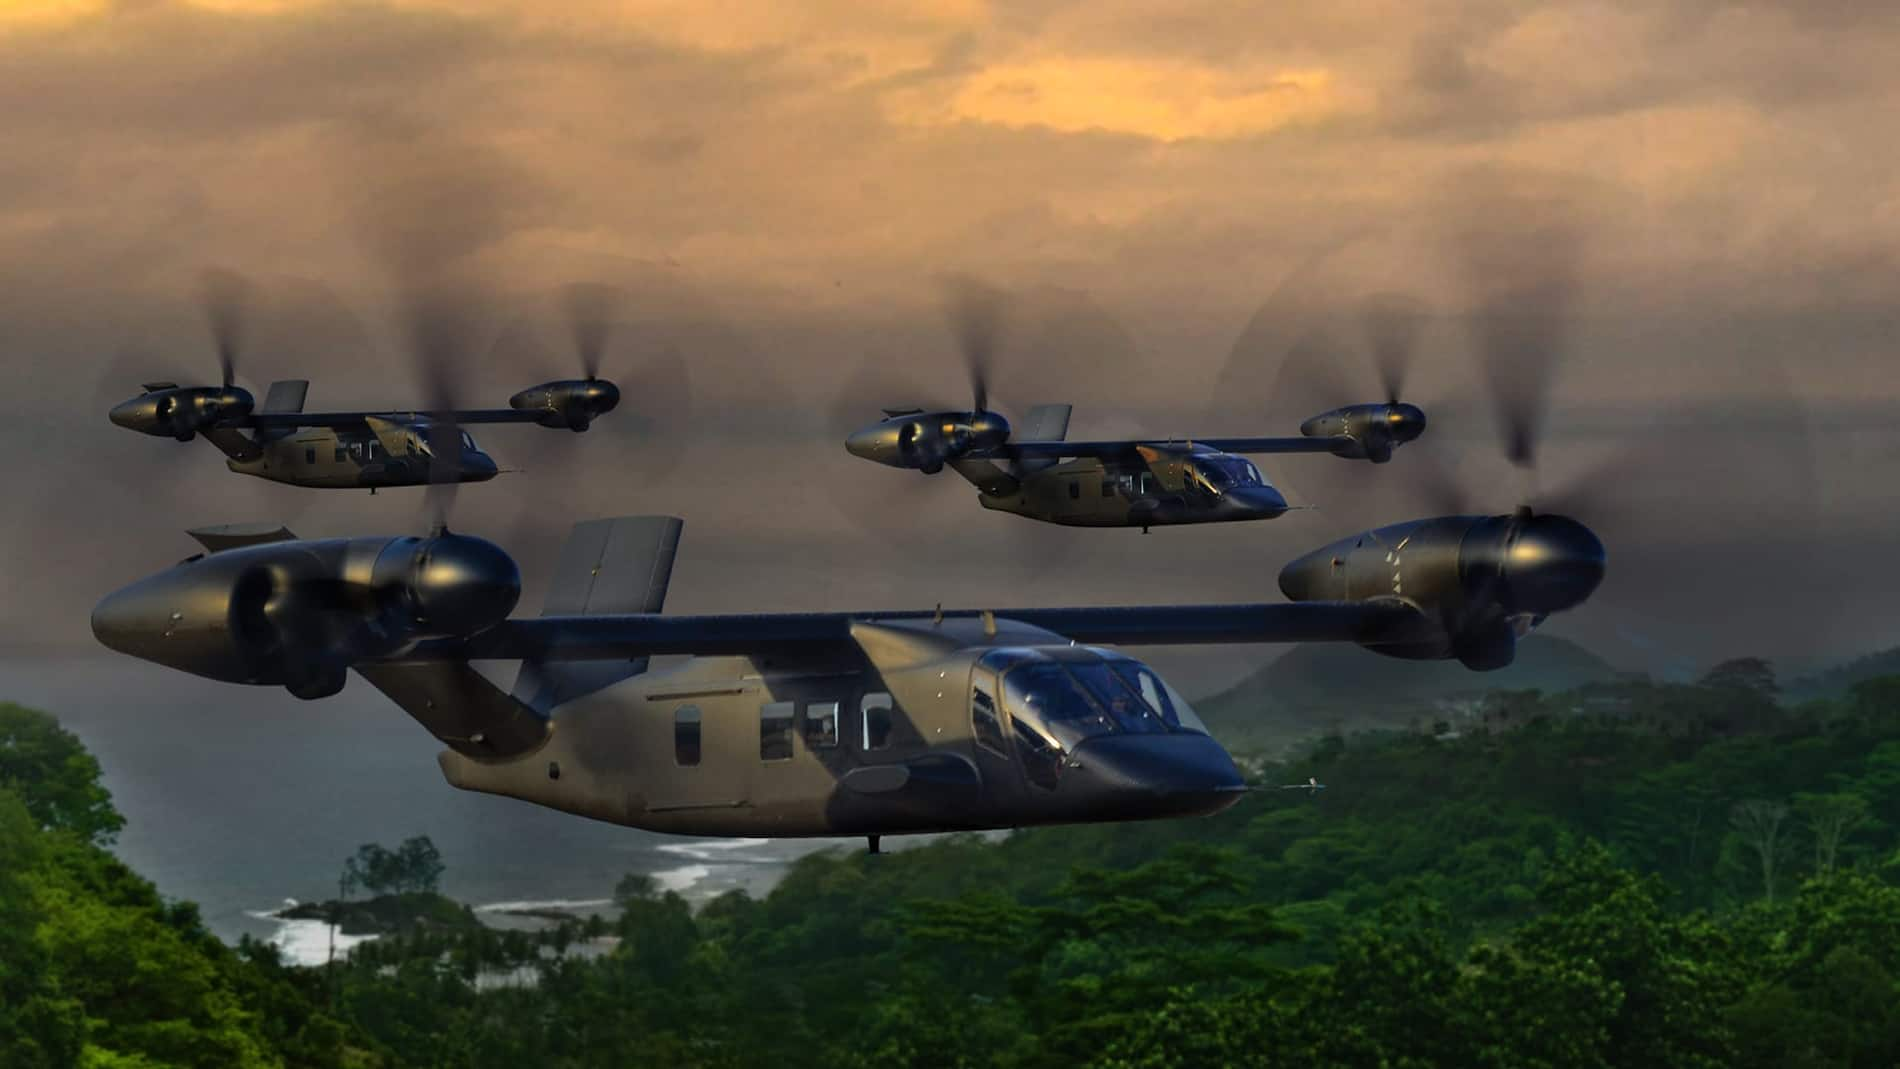 Bell V-280 Valor in flight - Bell's entry to the U.S. Army's Future Long Range Assault Aircraft for the Future Vertical Lift (FVL) competition.